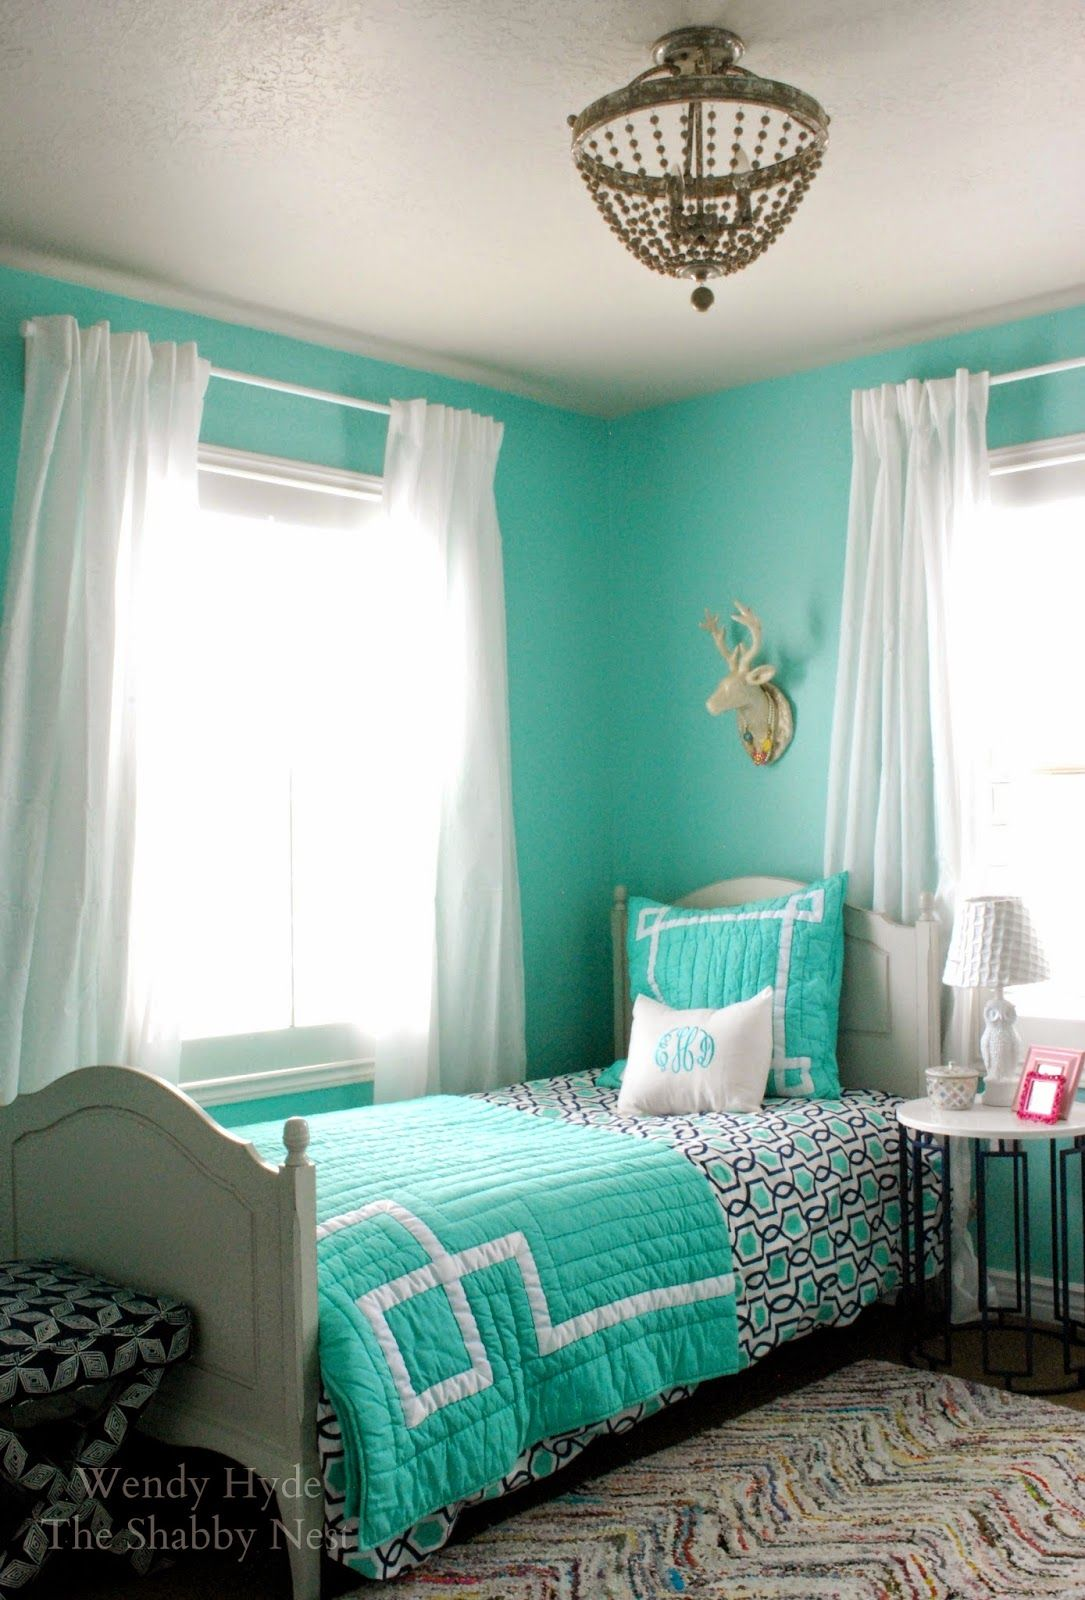 green bedroom paint green bedrooms bedroom decor bedroom ideas teen